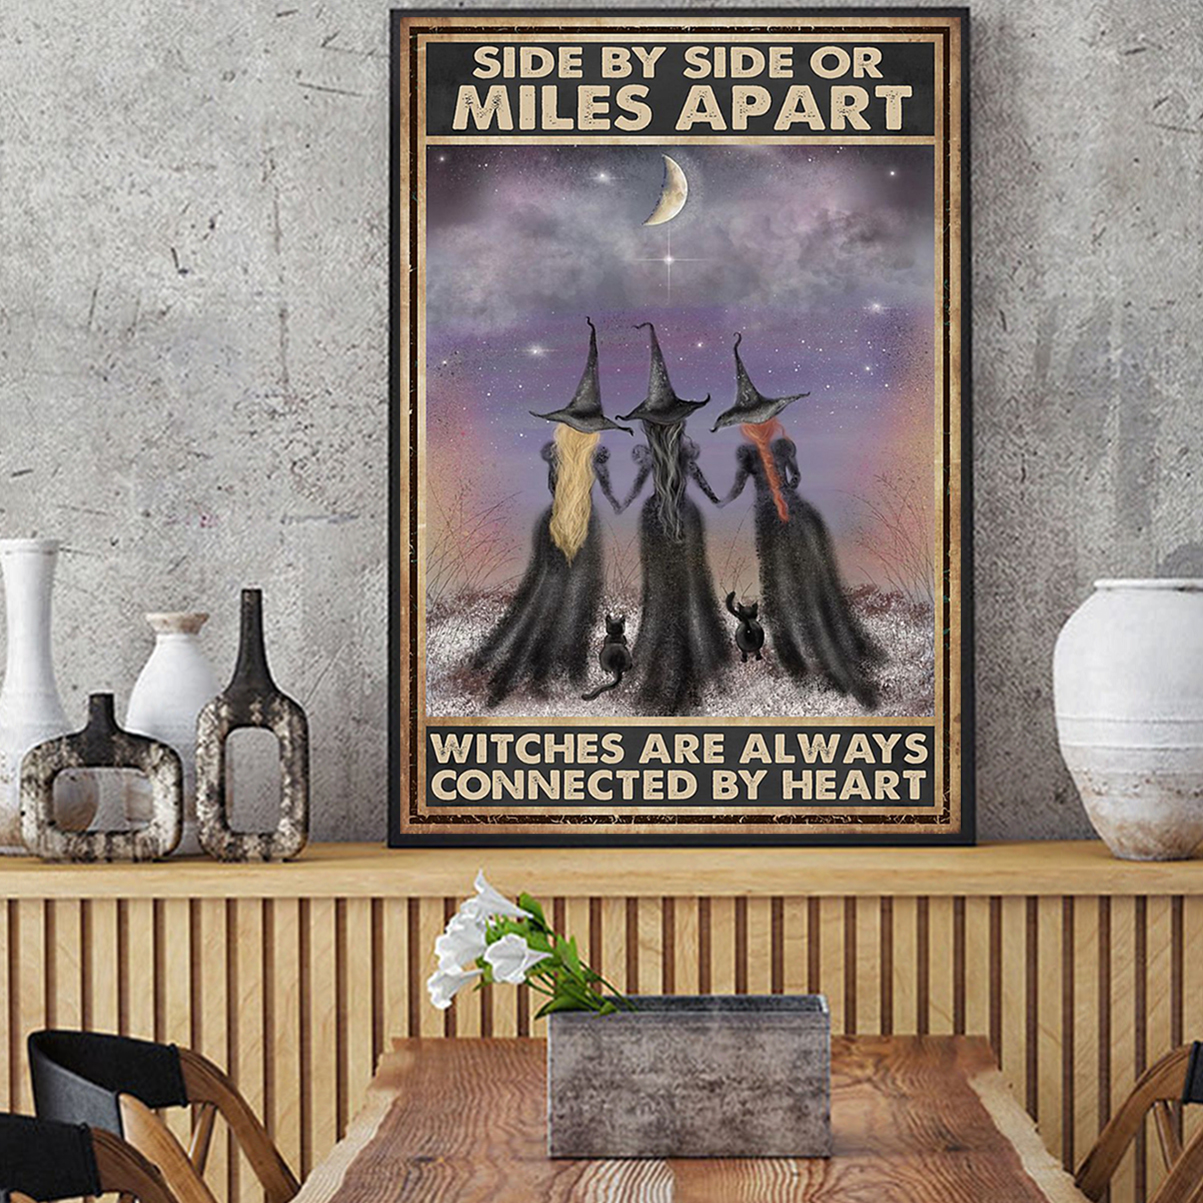 Side by side or miles apart witches are always connected by heart poster A2